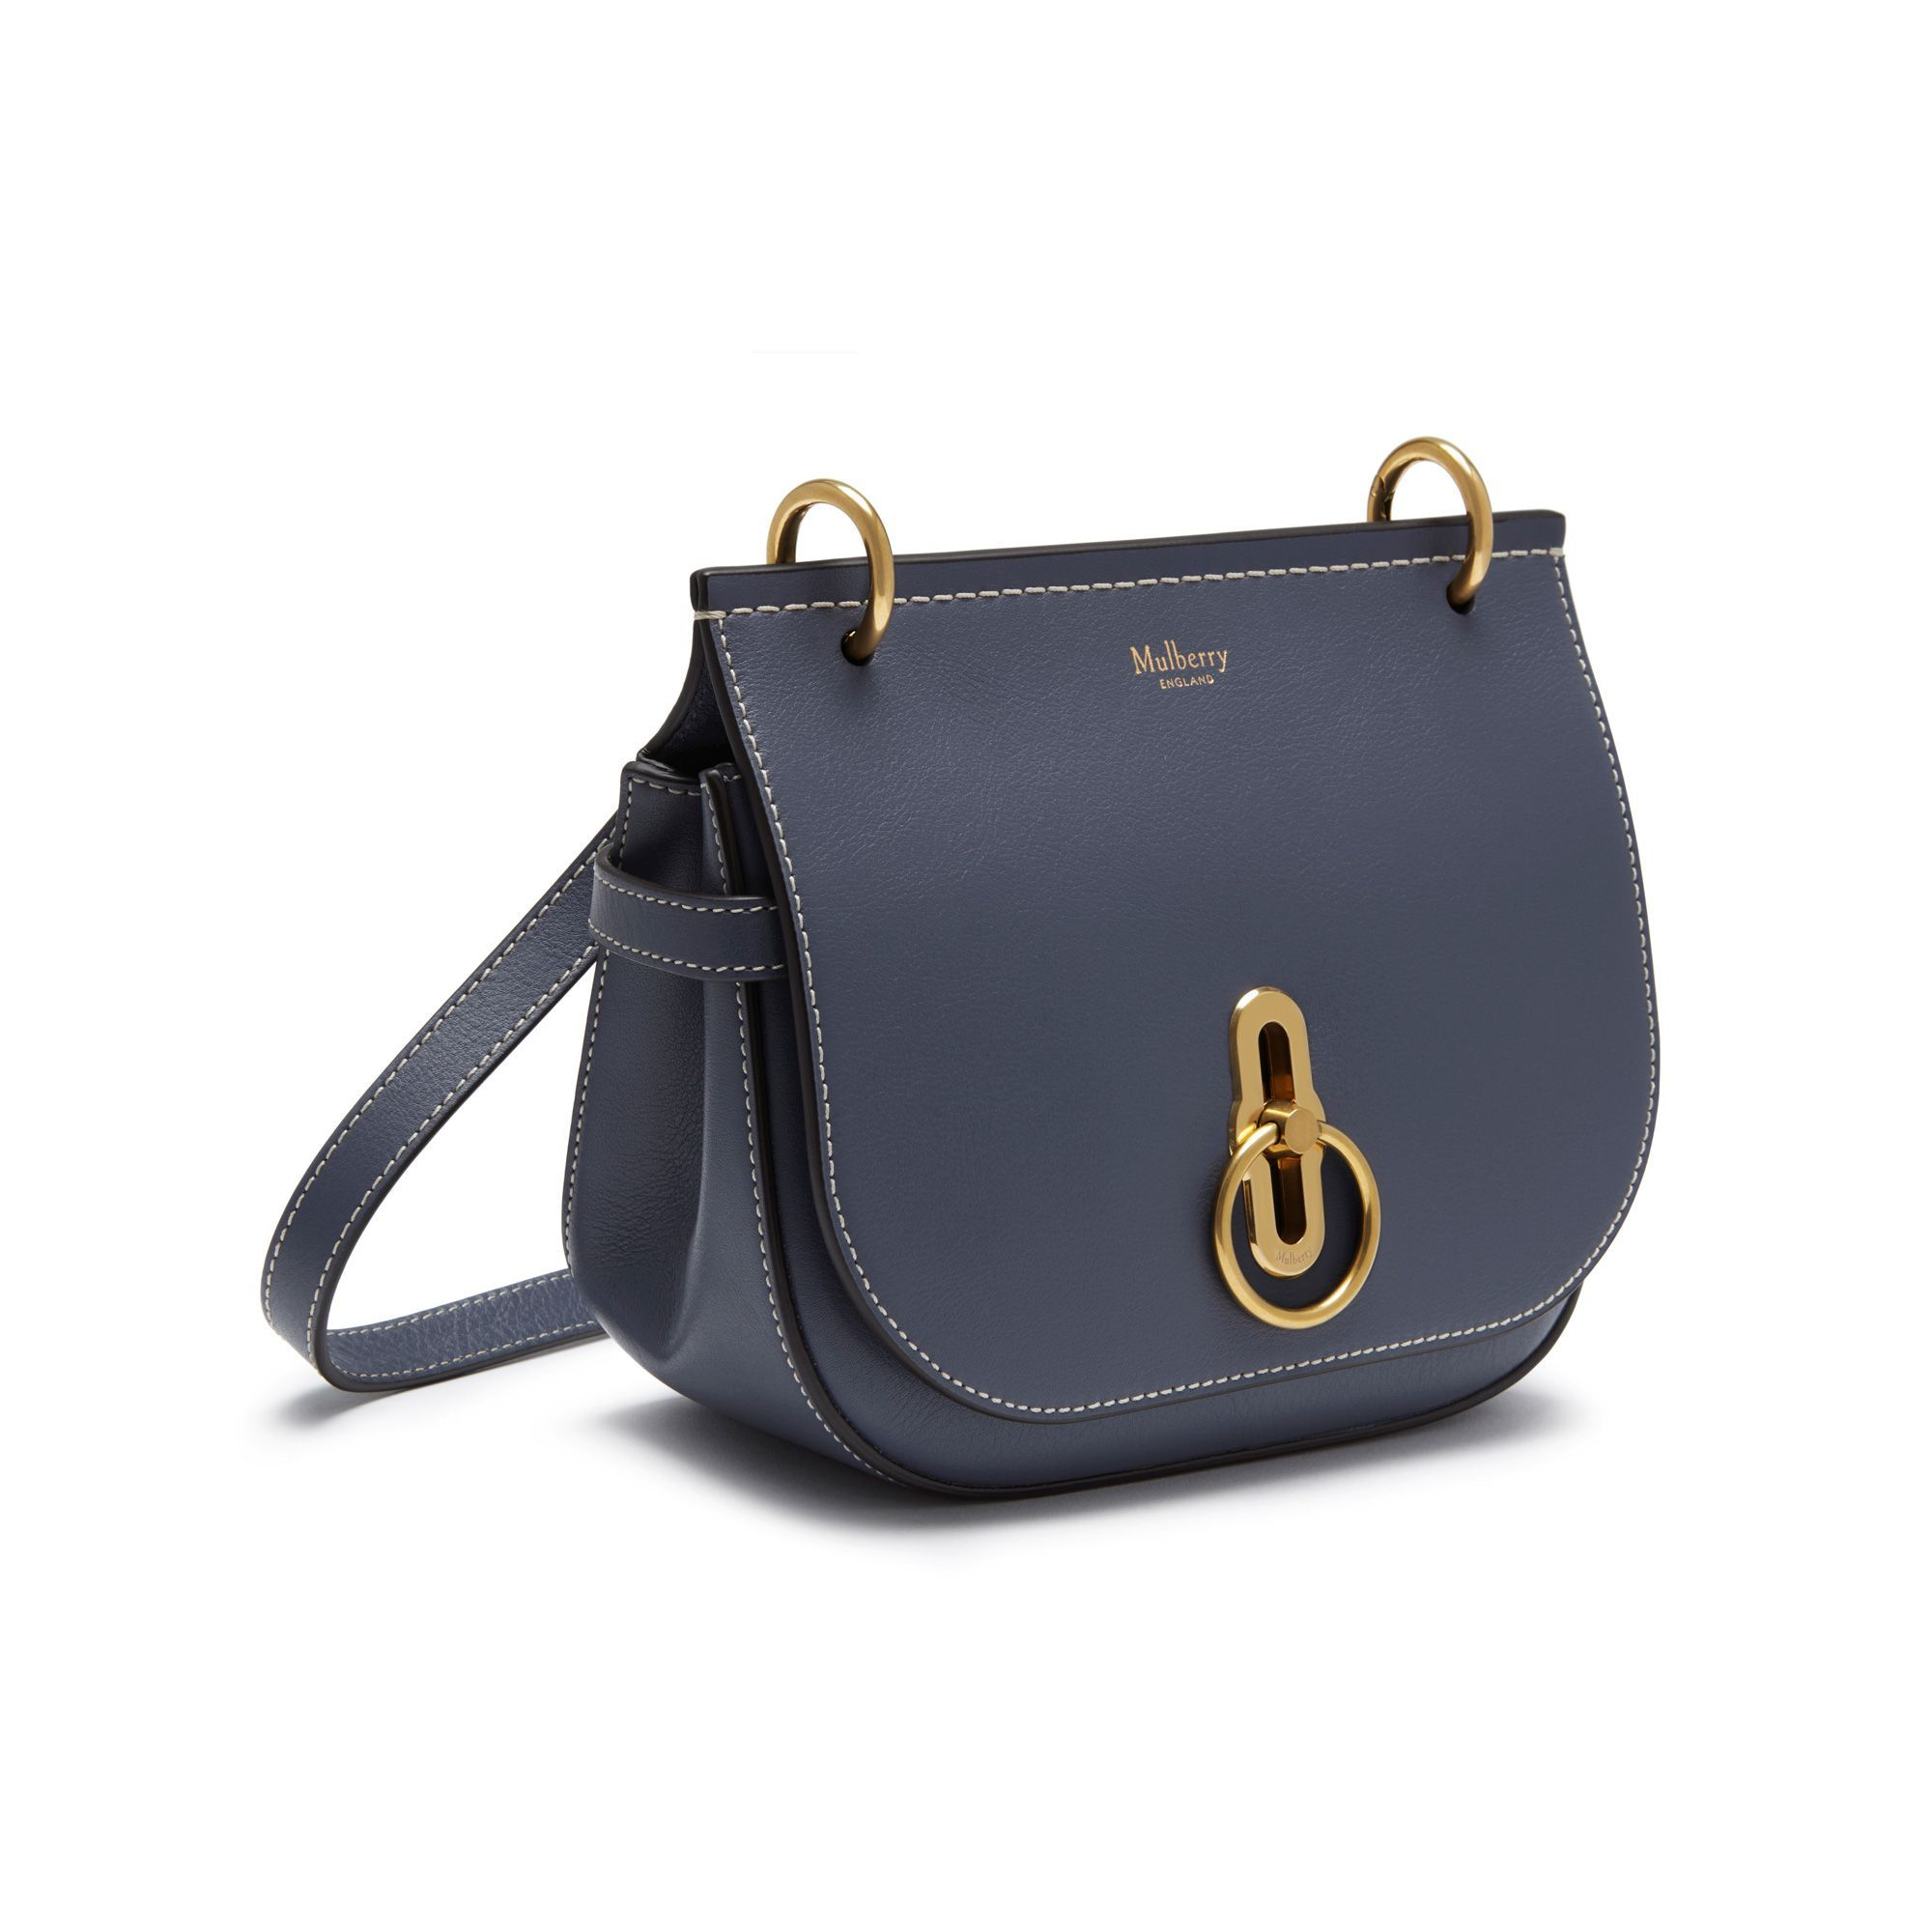 a9a8196076 Shop the Small Amberley Satchel in Elephant Silky Calf Leather at Mulberry.com.  Inspired